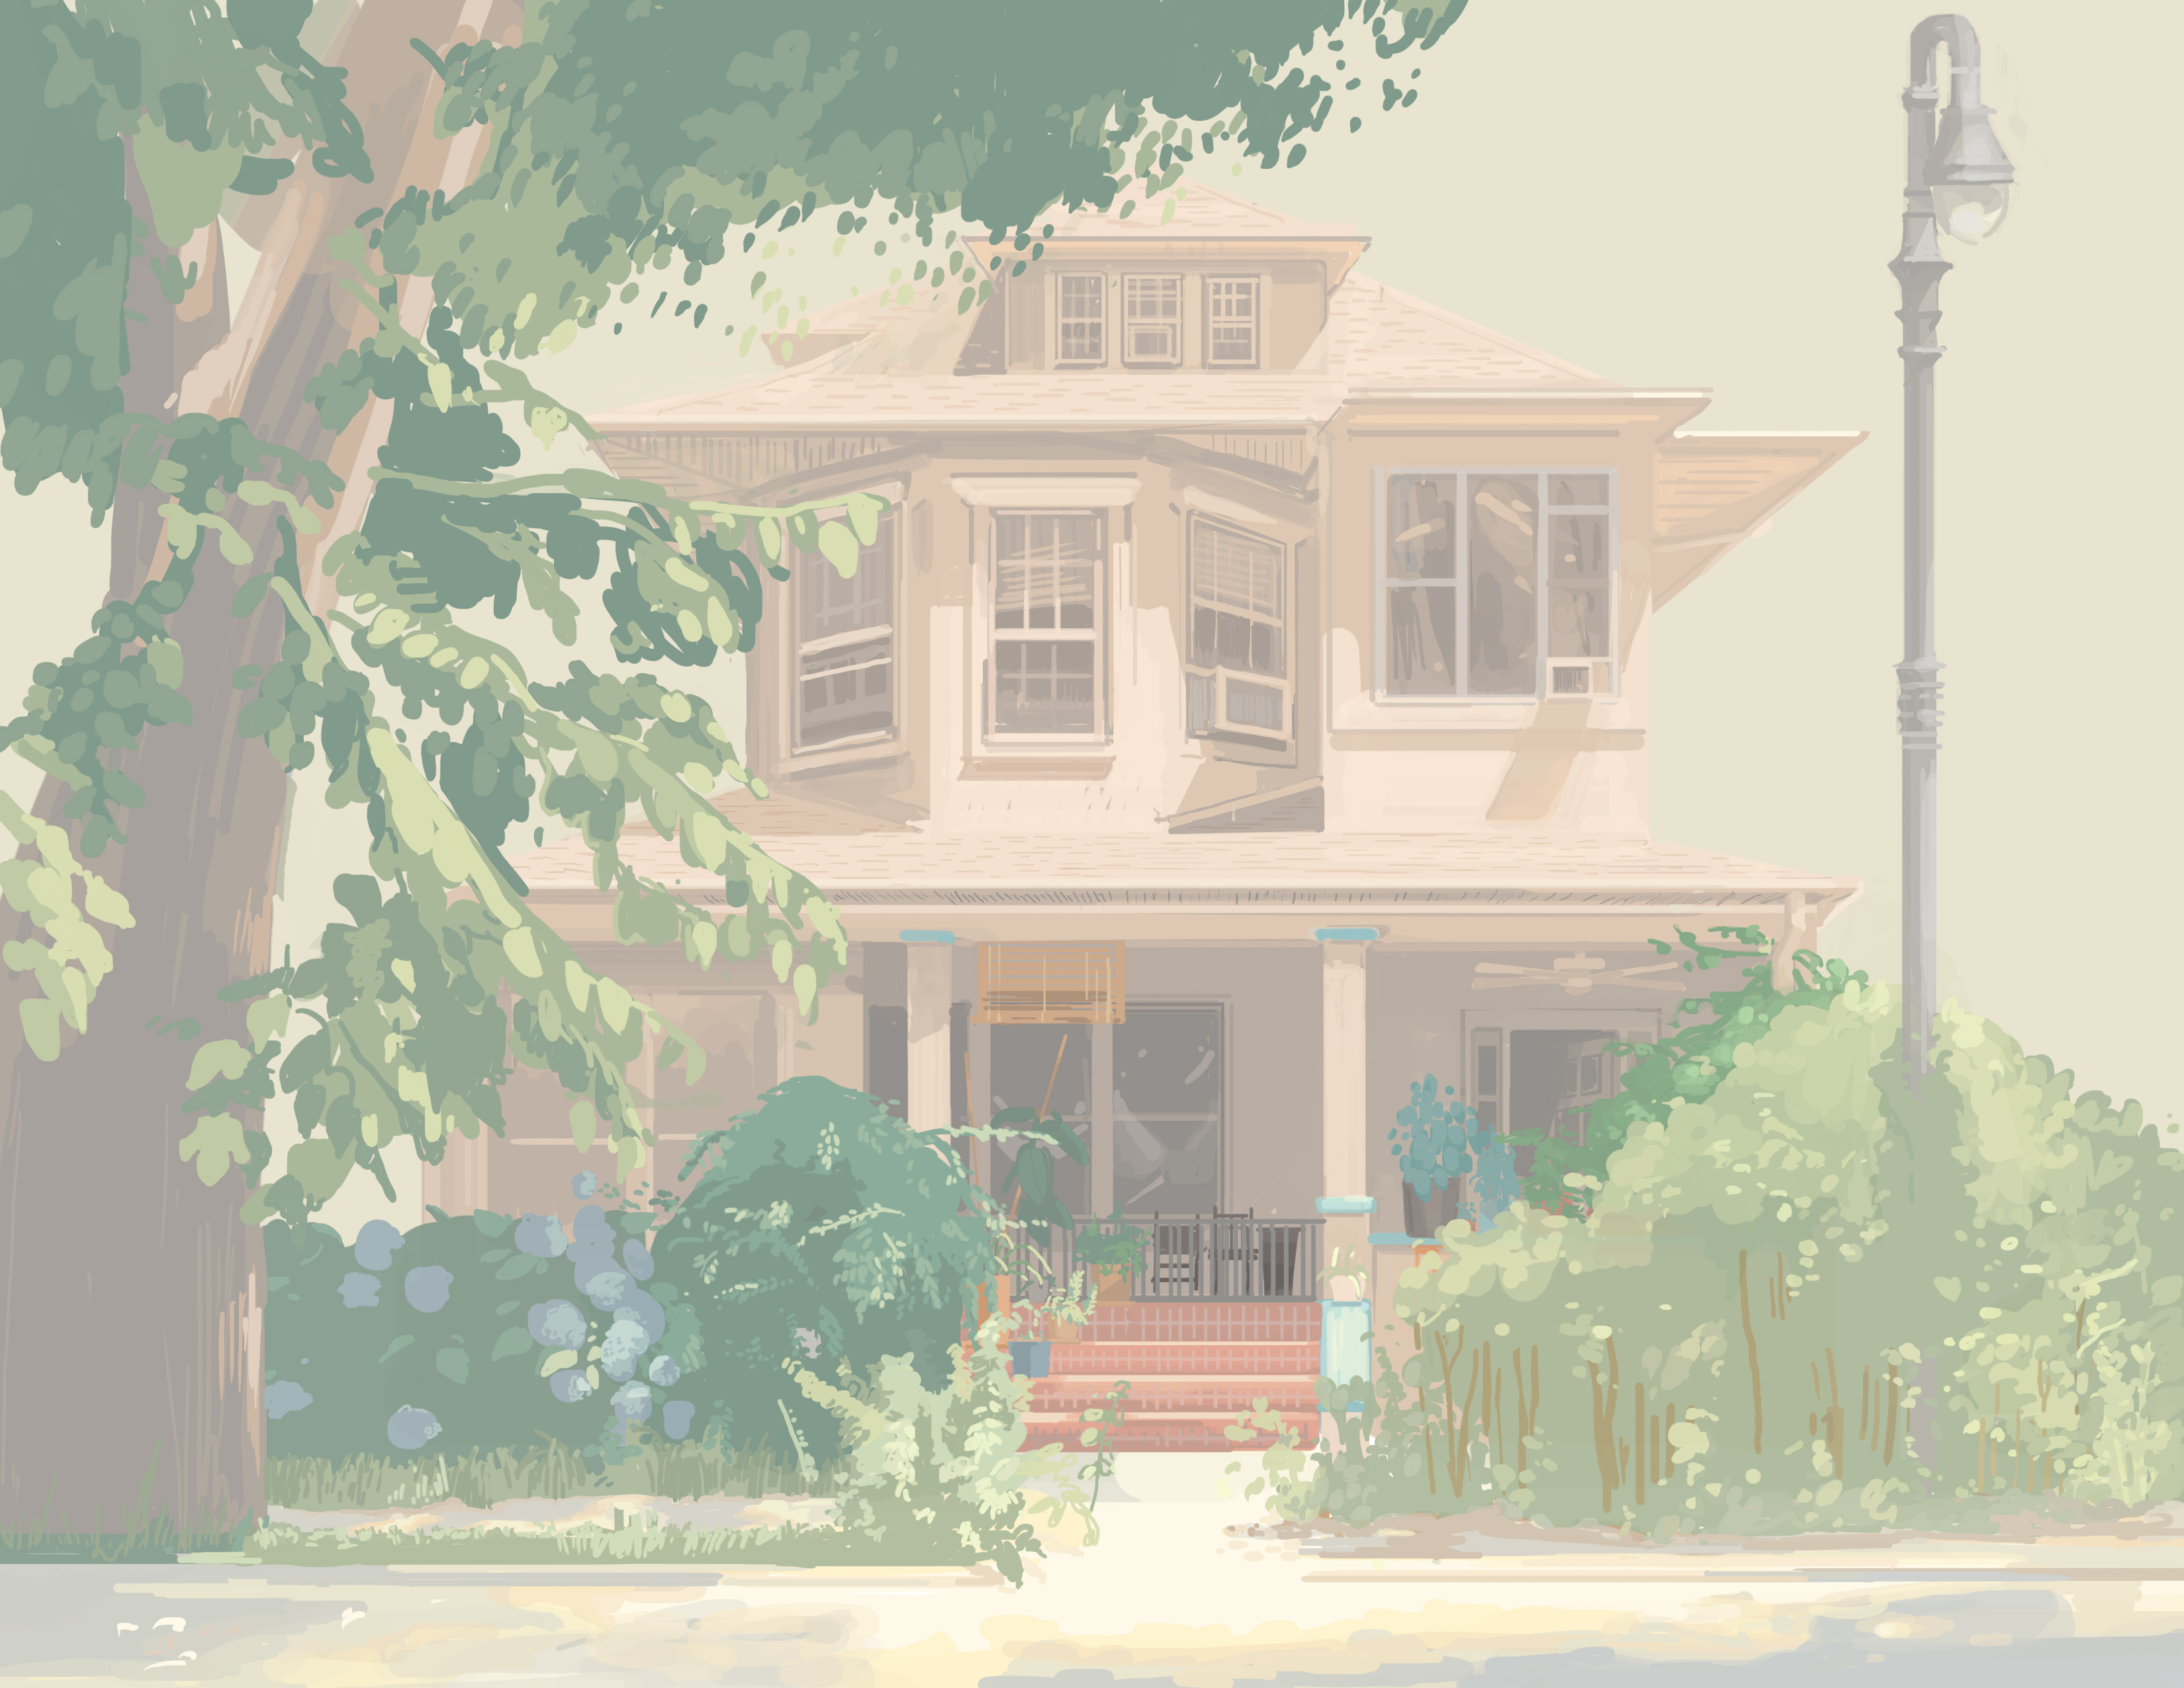 Illustration of a house with a large tree in front of it.